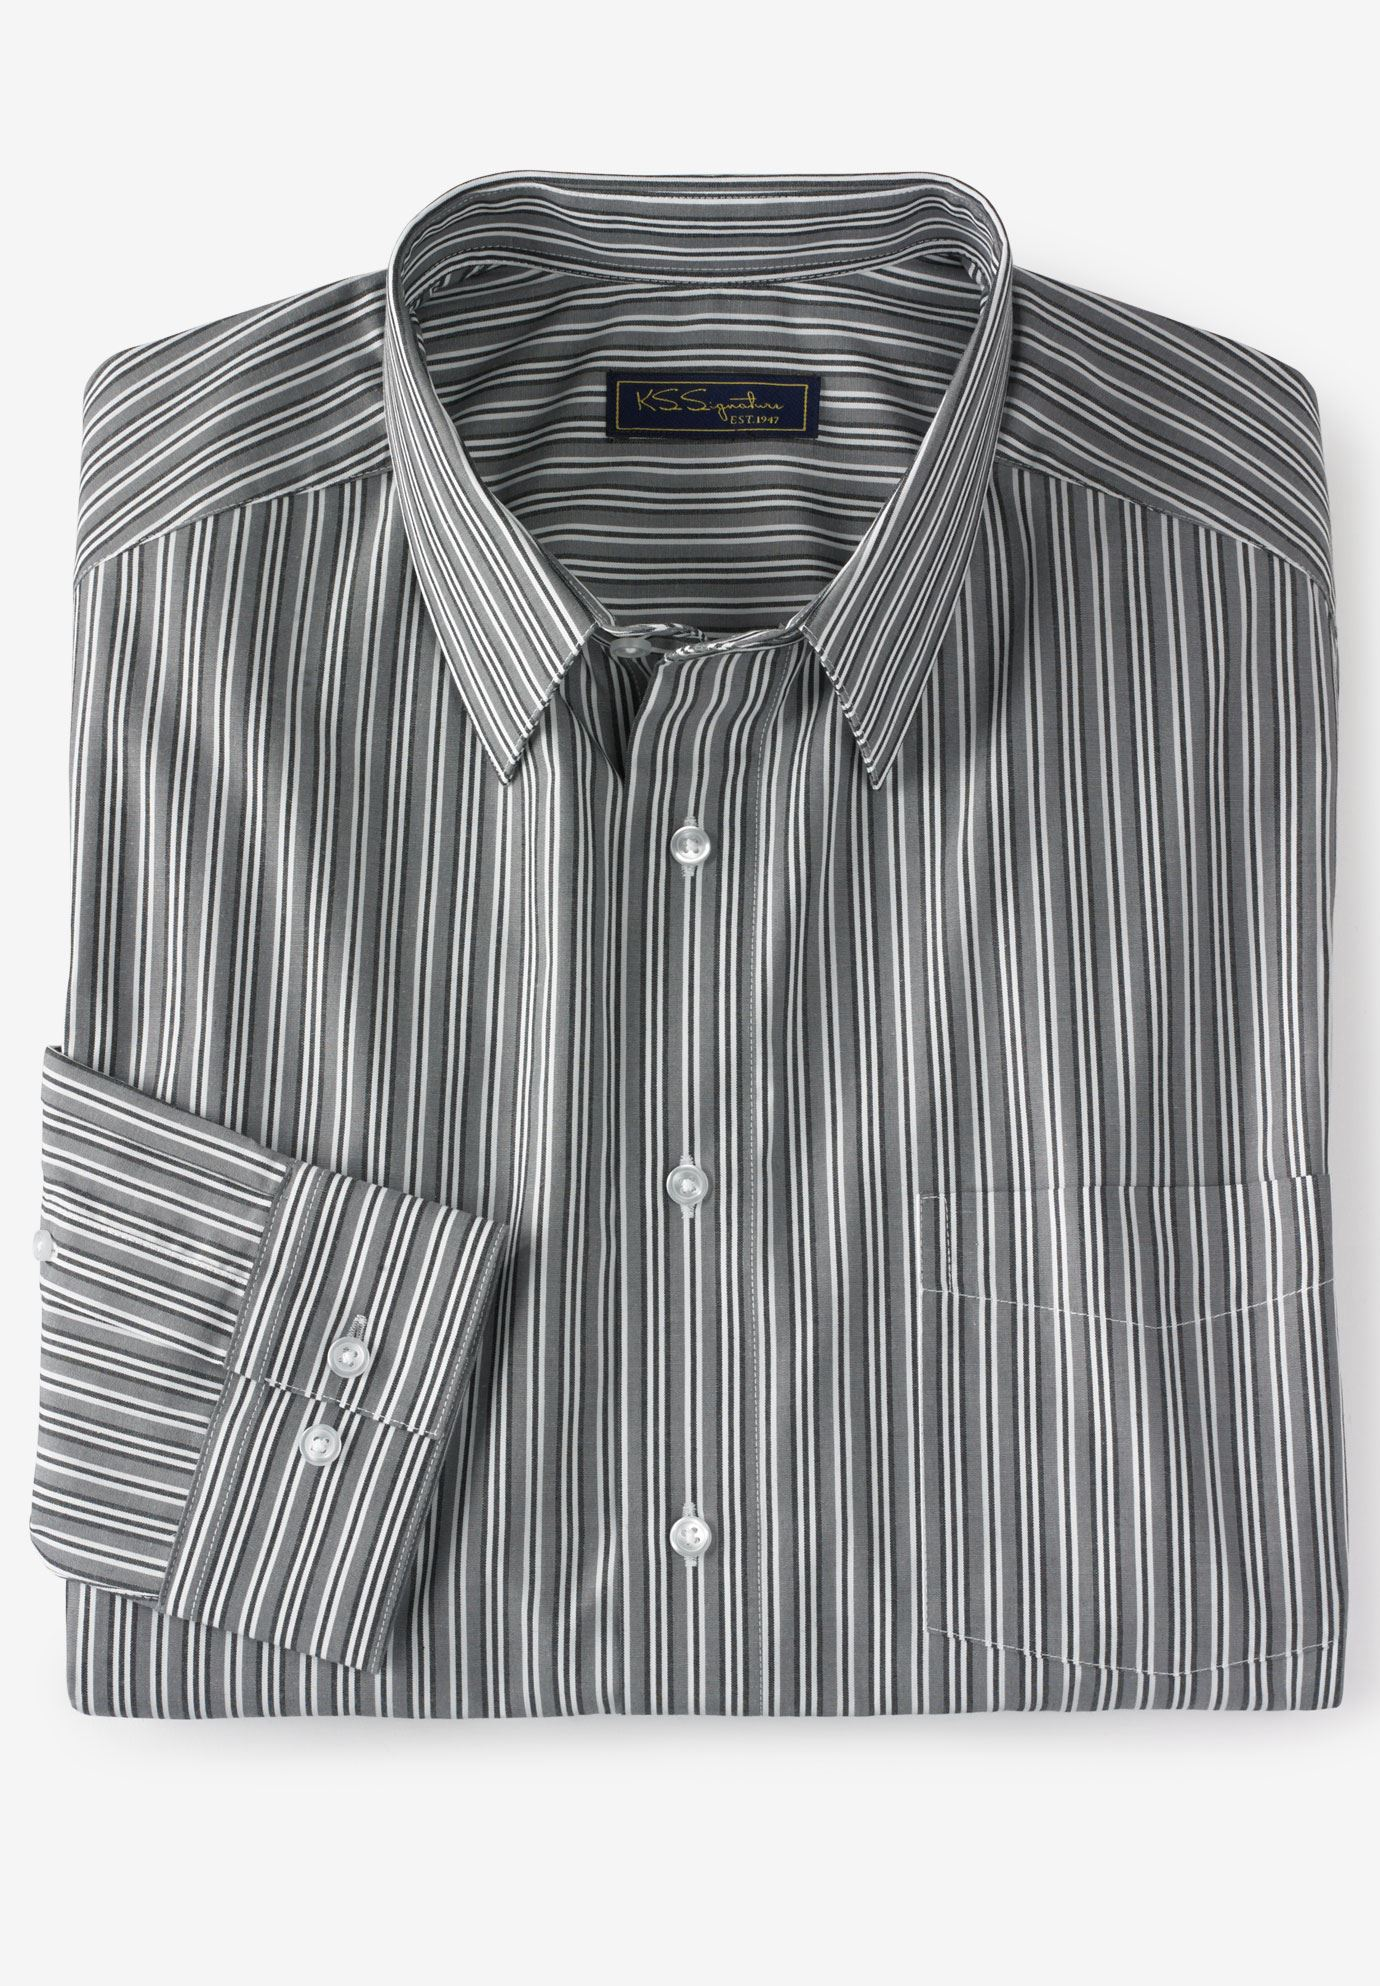 No Hassle® Long-Sleeve Dress Shirt by KS Signature®,